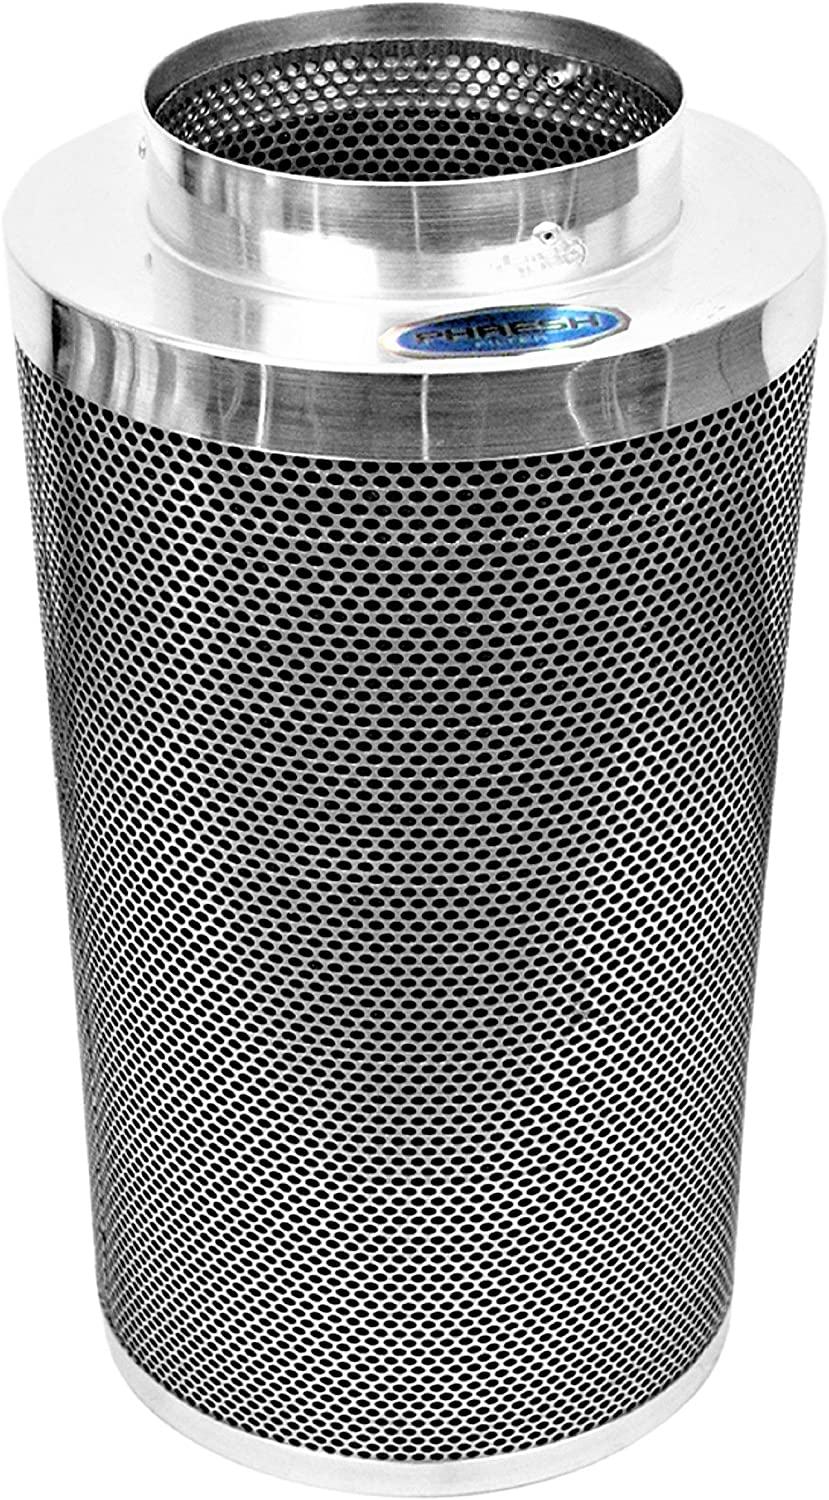 Phresh Carbon Filter For The Cleanest Air Around, 8″ x 24″ – 750 CFM